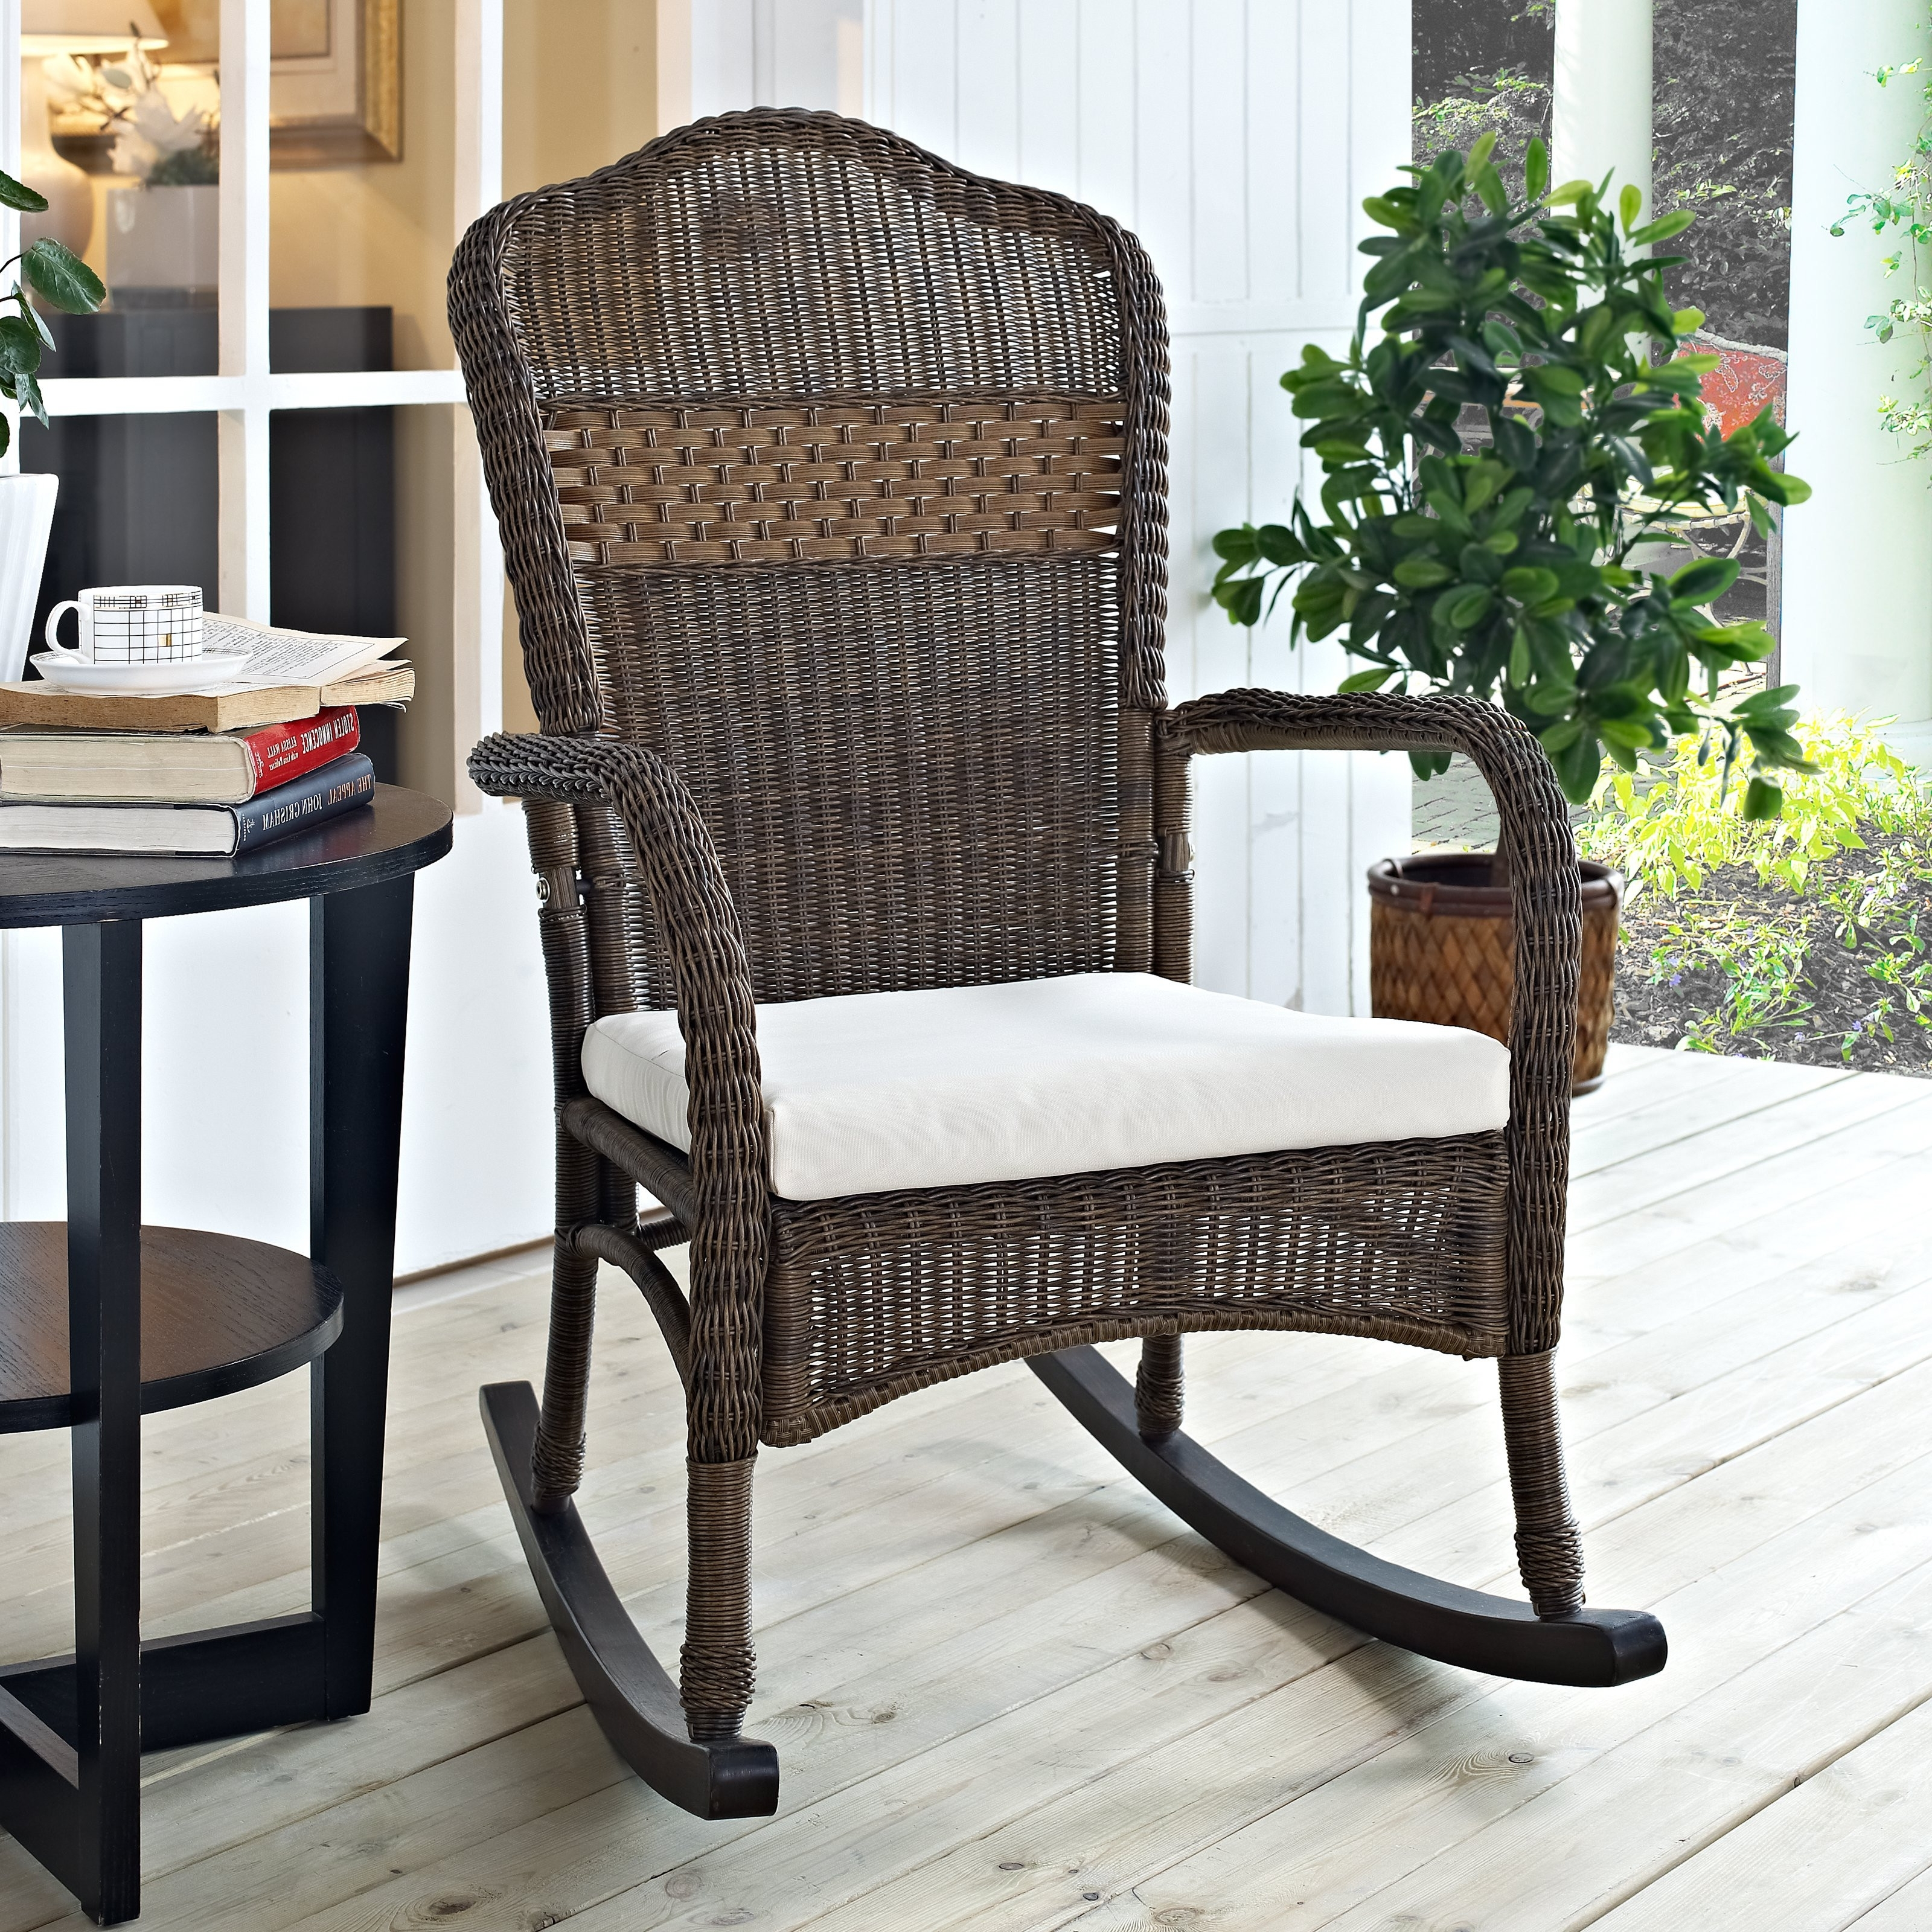 Patio & Garden : Outdoor Rocking Chairs Design Home Design Albert With Well Liked Brown Wicker Patio Rocking Chairs (View 2 of 20)